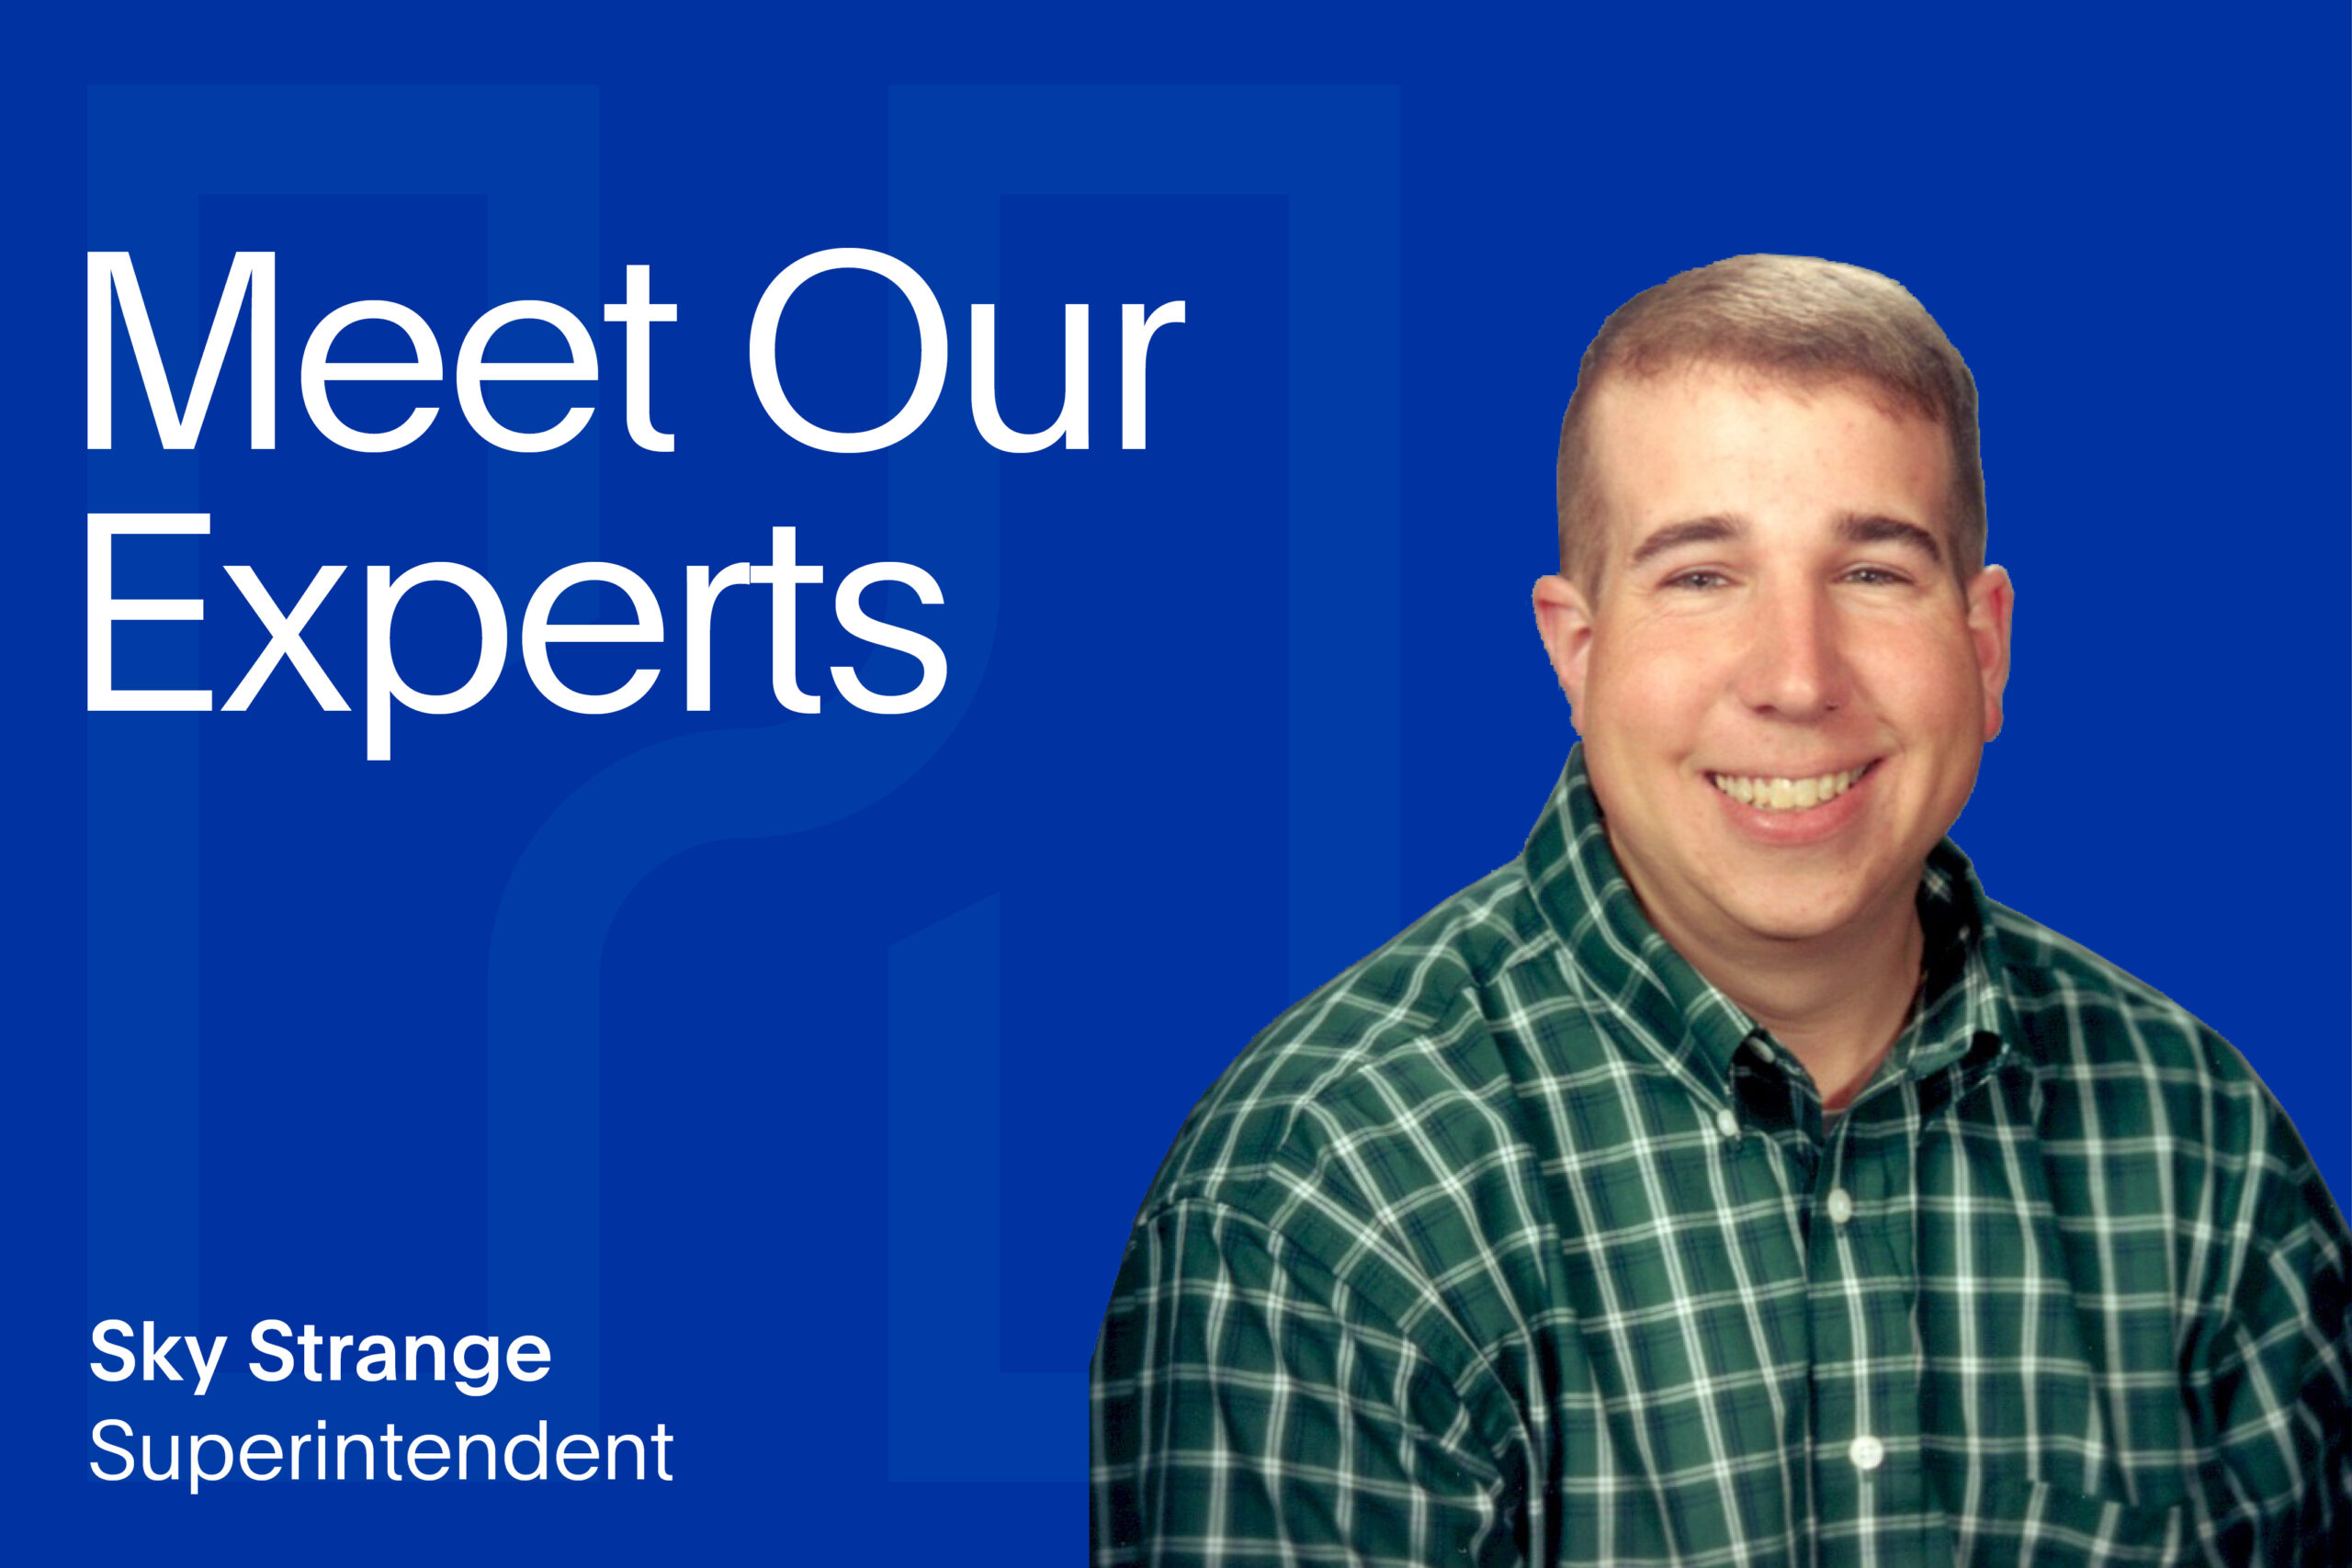 Meet Our Experts: Sky Strange